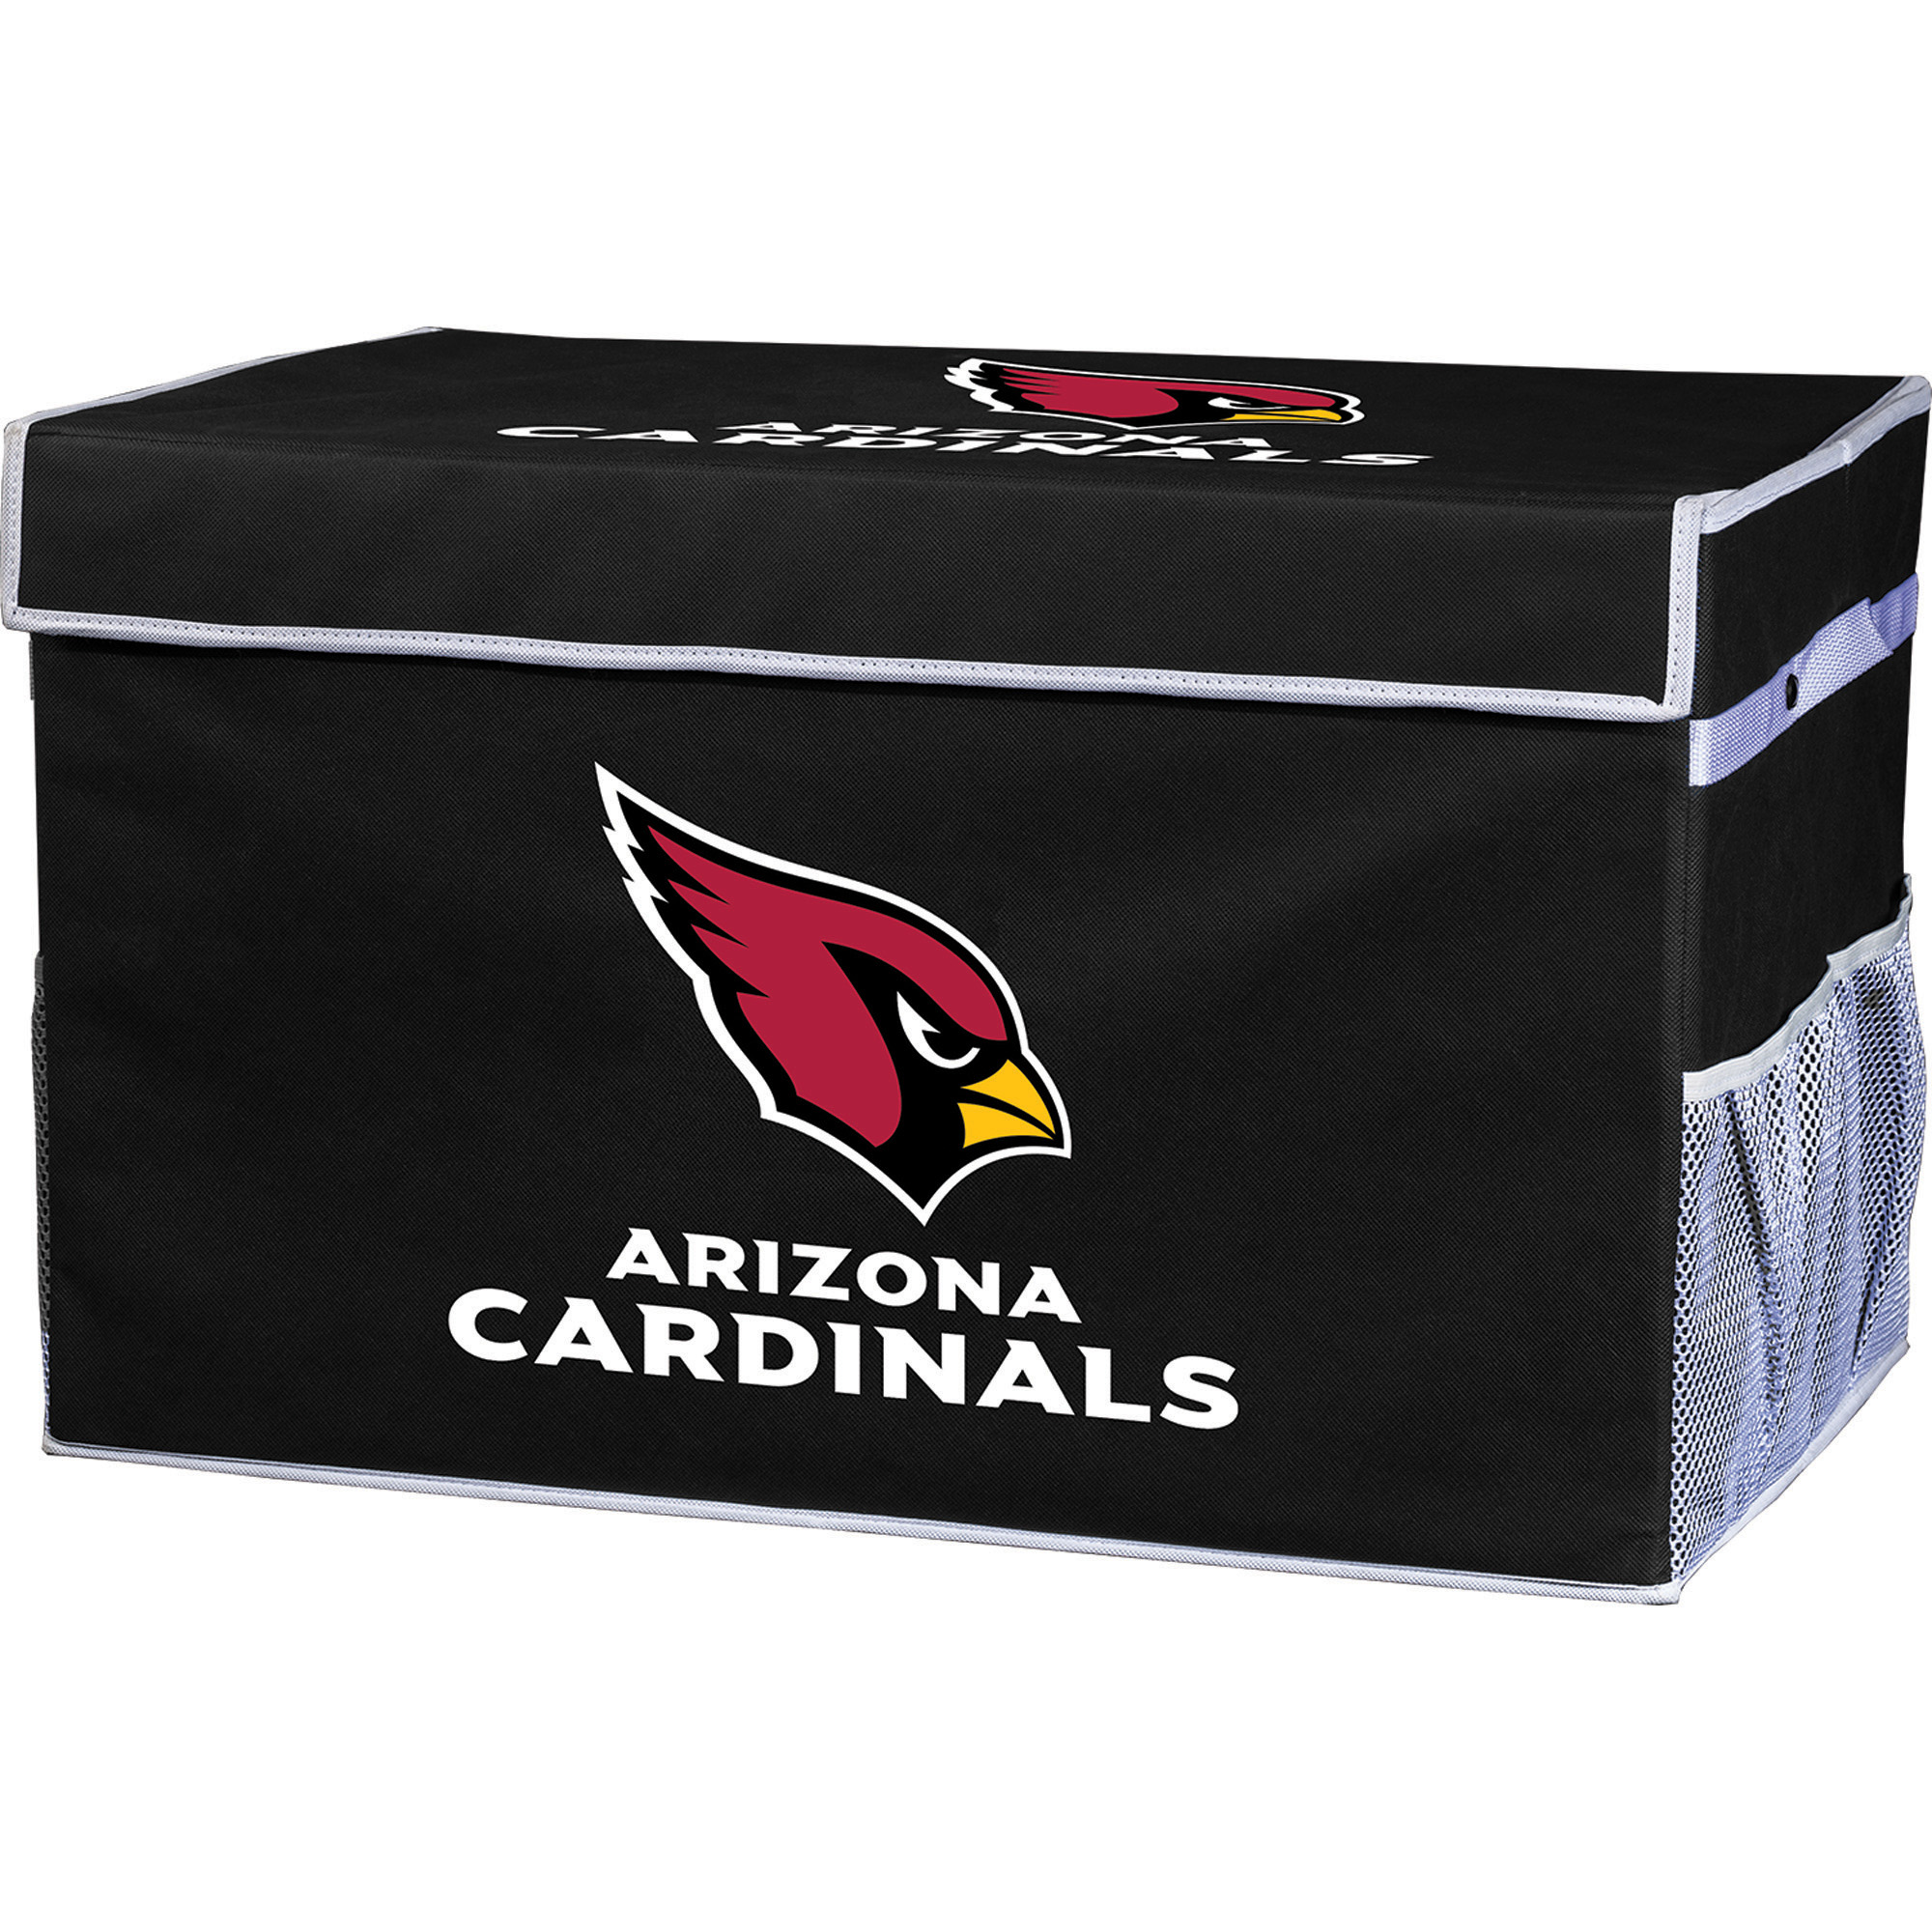 Franklin Sports NFL Arizona Cardinals Collapsible Storage Footlocker Bins - Large